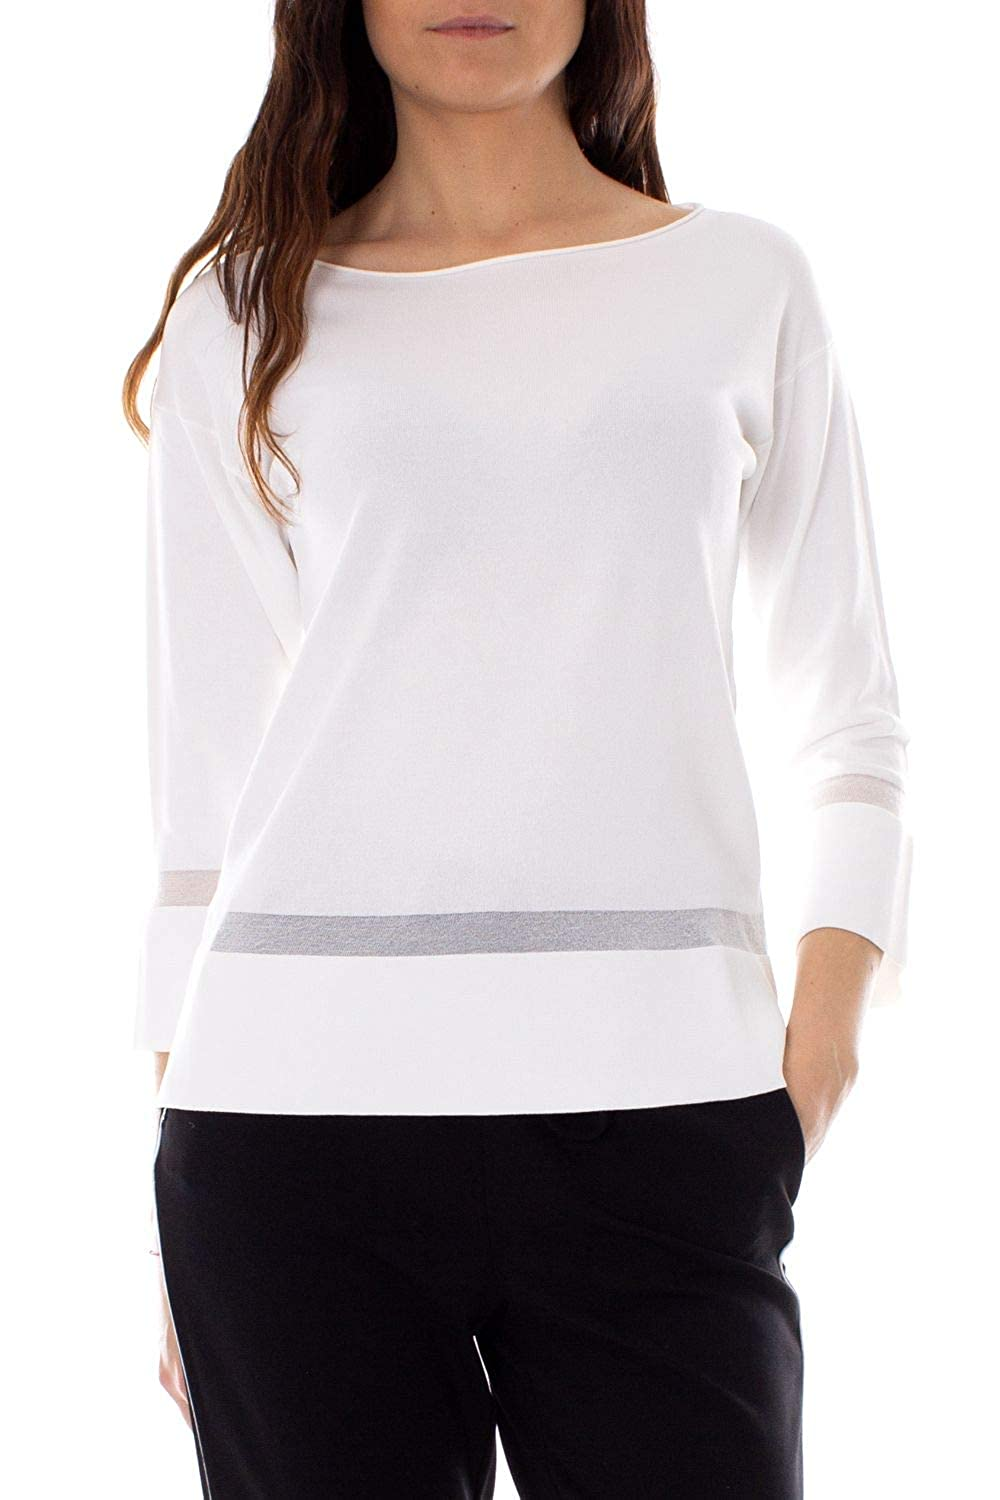 ANIS COLLECTION MILANO Womens 933066WHITE White Viscose Jumper